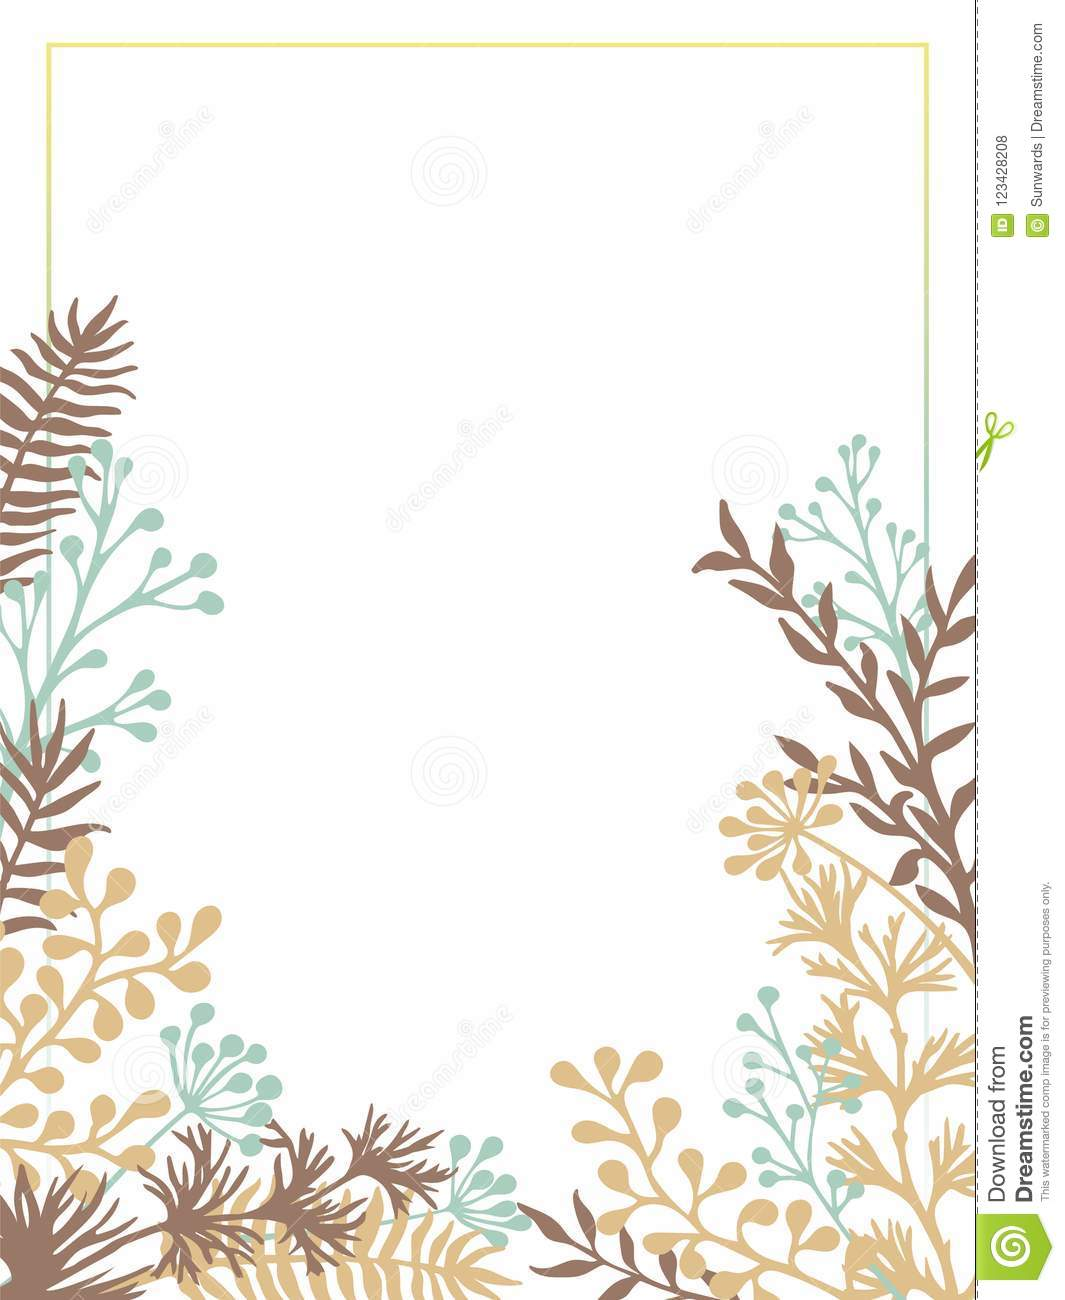 Herbal Twigs And Branches Border Vector Invitation Card